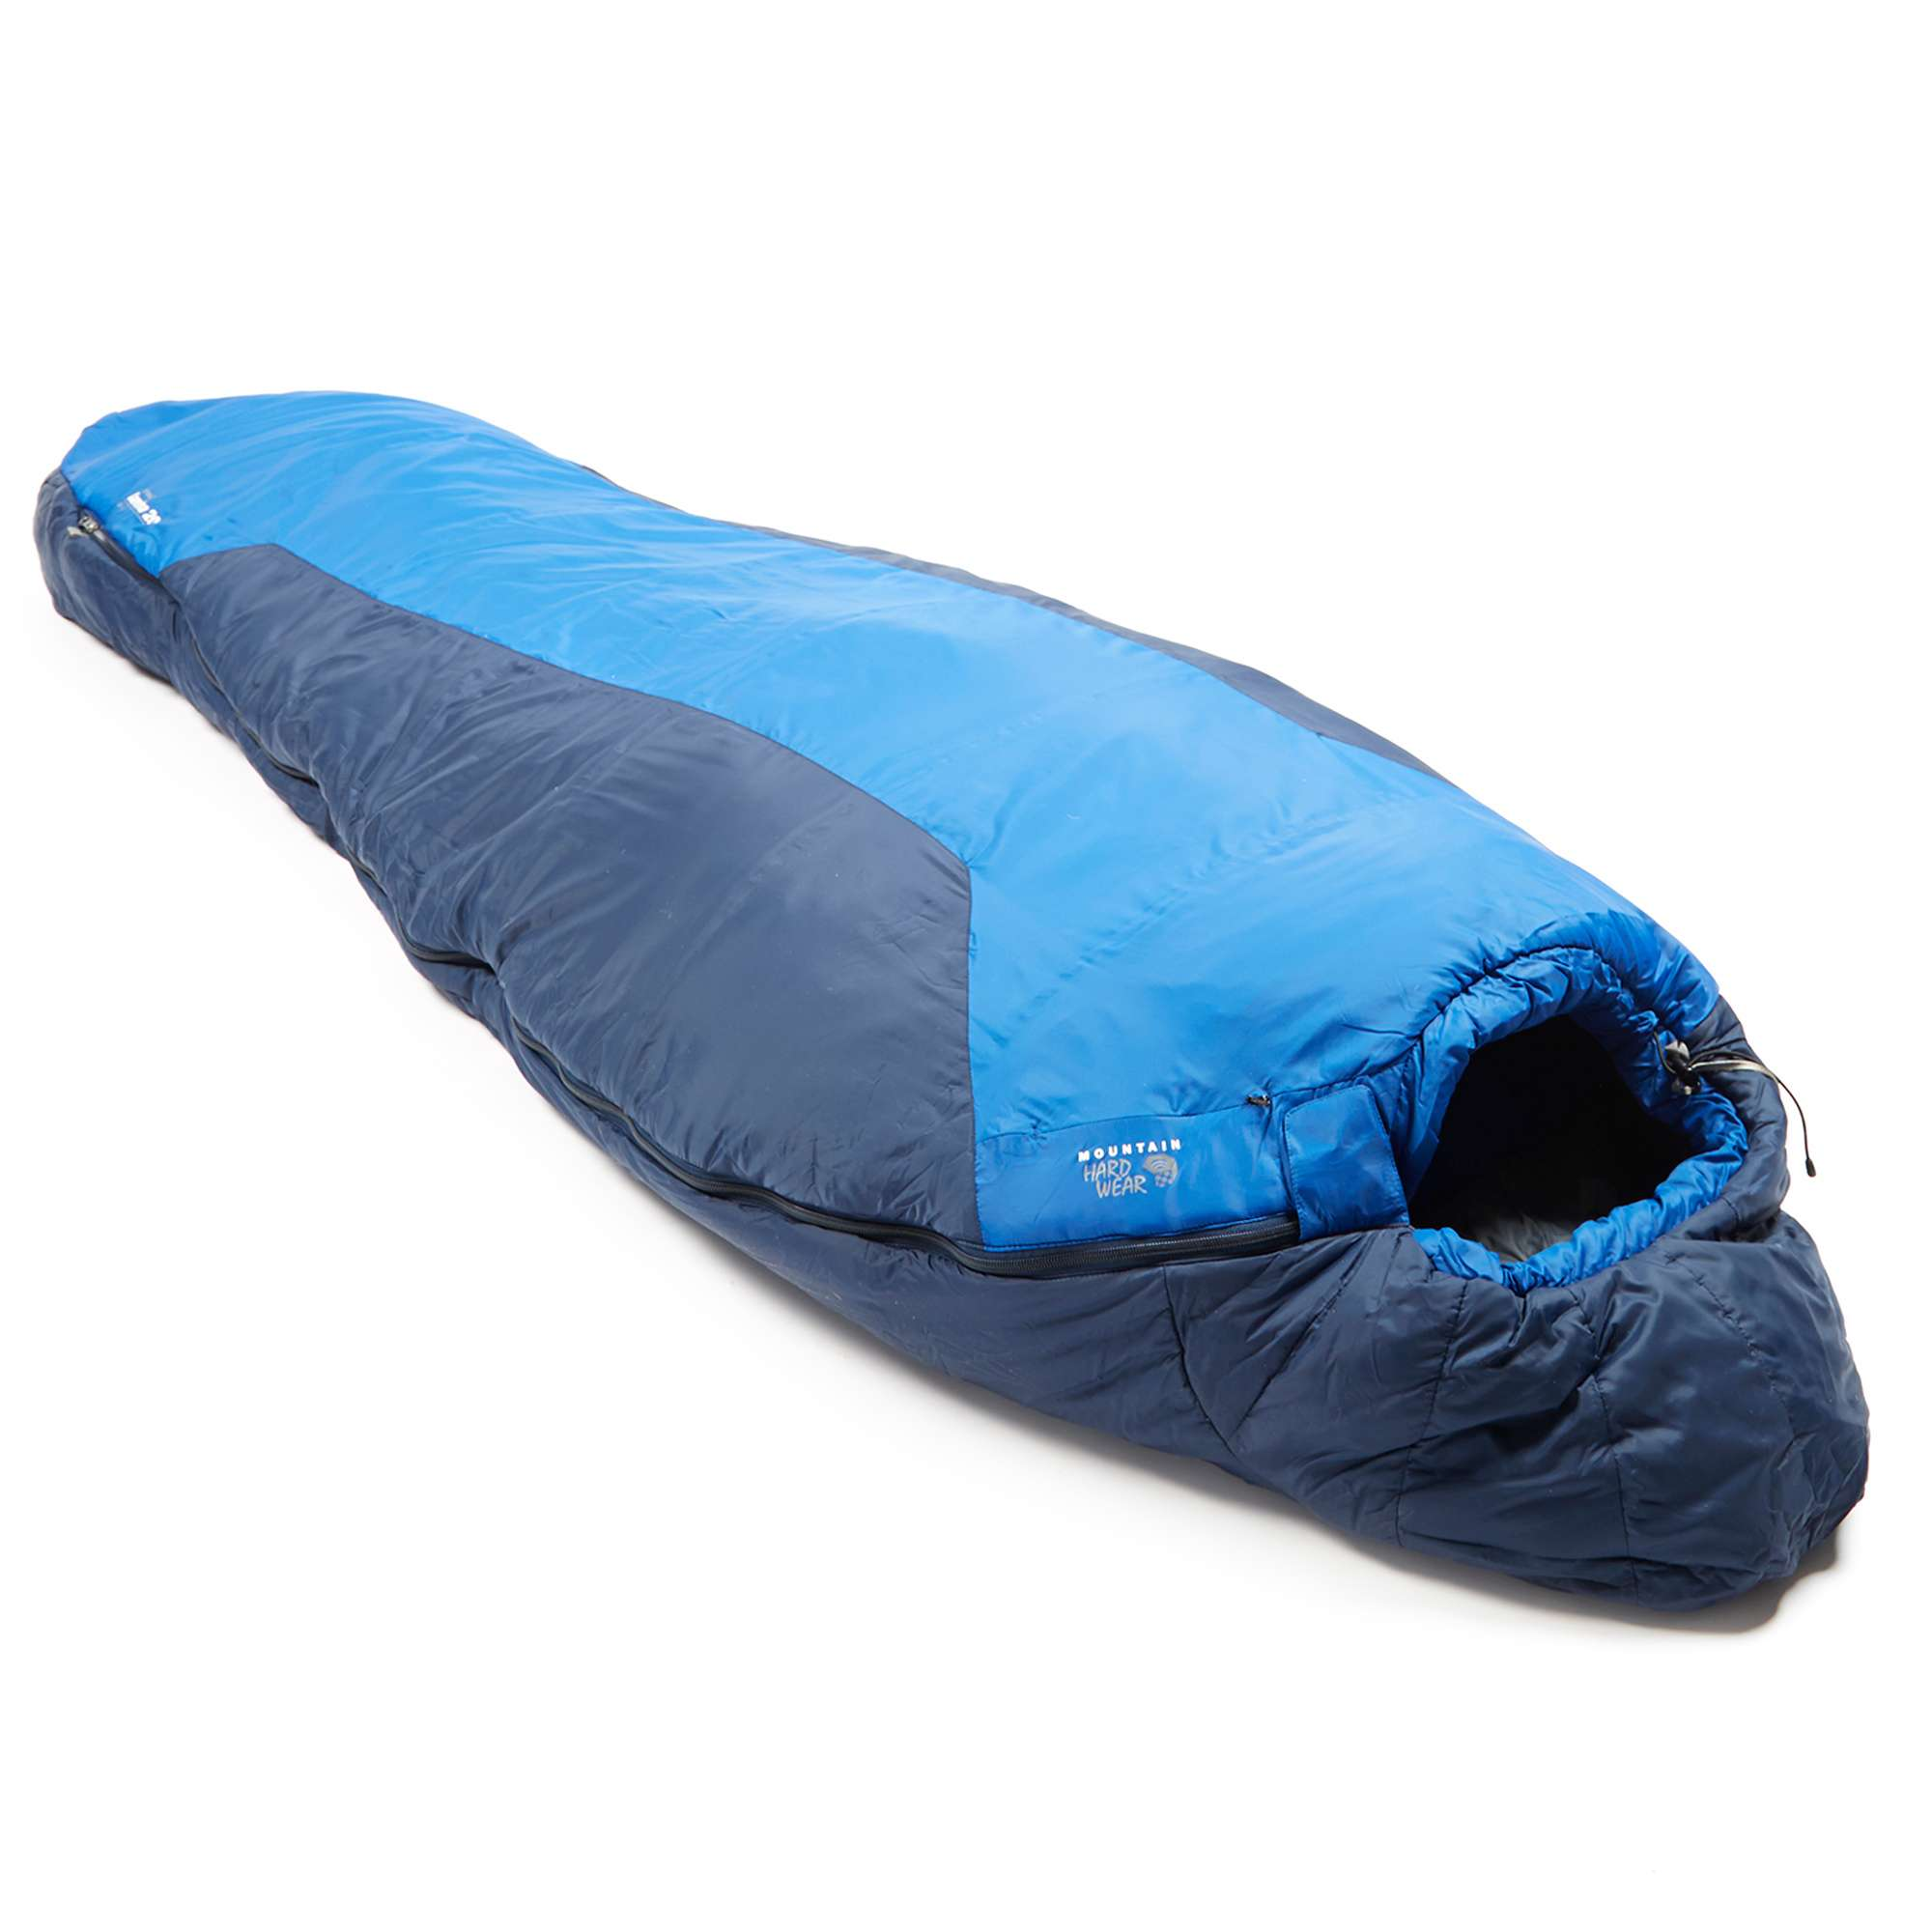 MOUNTAIN HARDWEAR Lamina 20 Sleeping Bag Regular